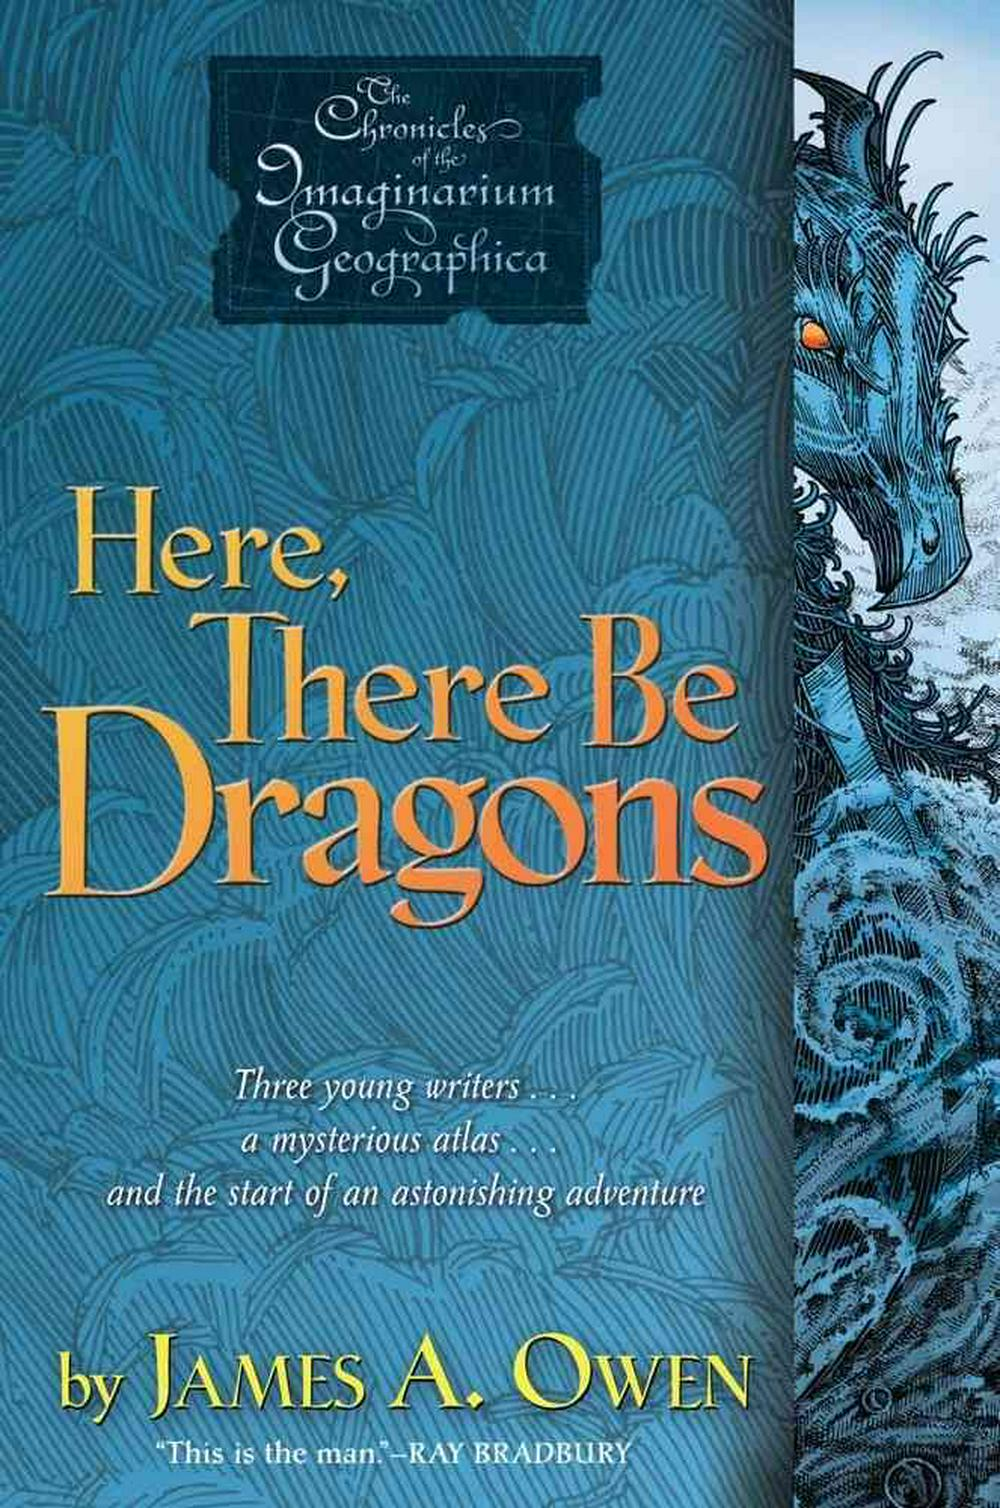 Here, There Be Dragons by James A Owen, ISBN: 9781416912286